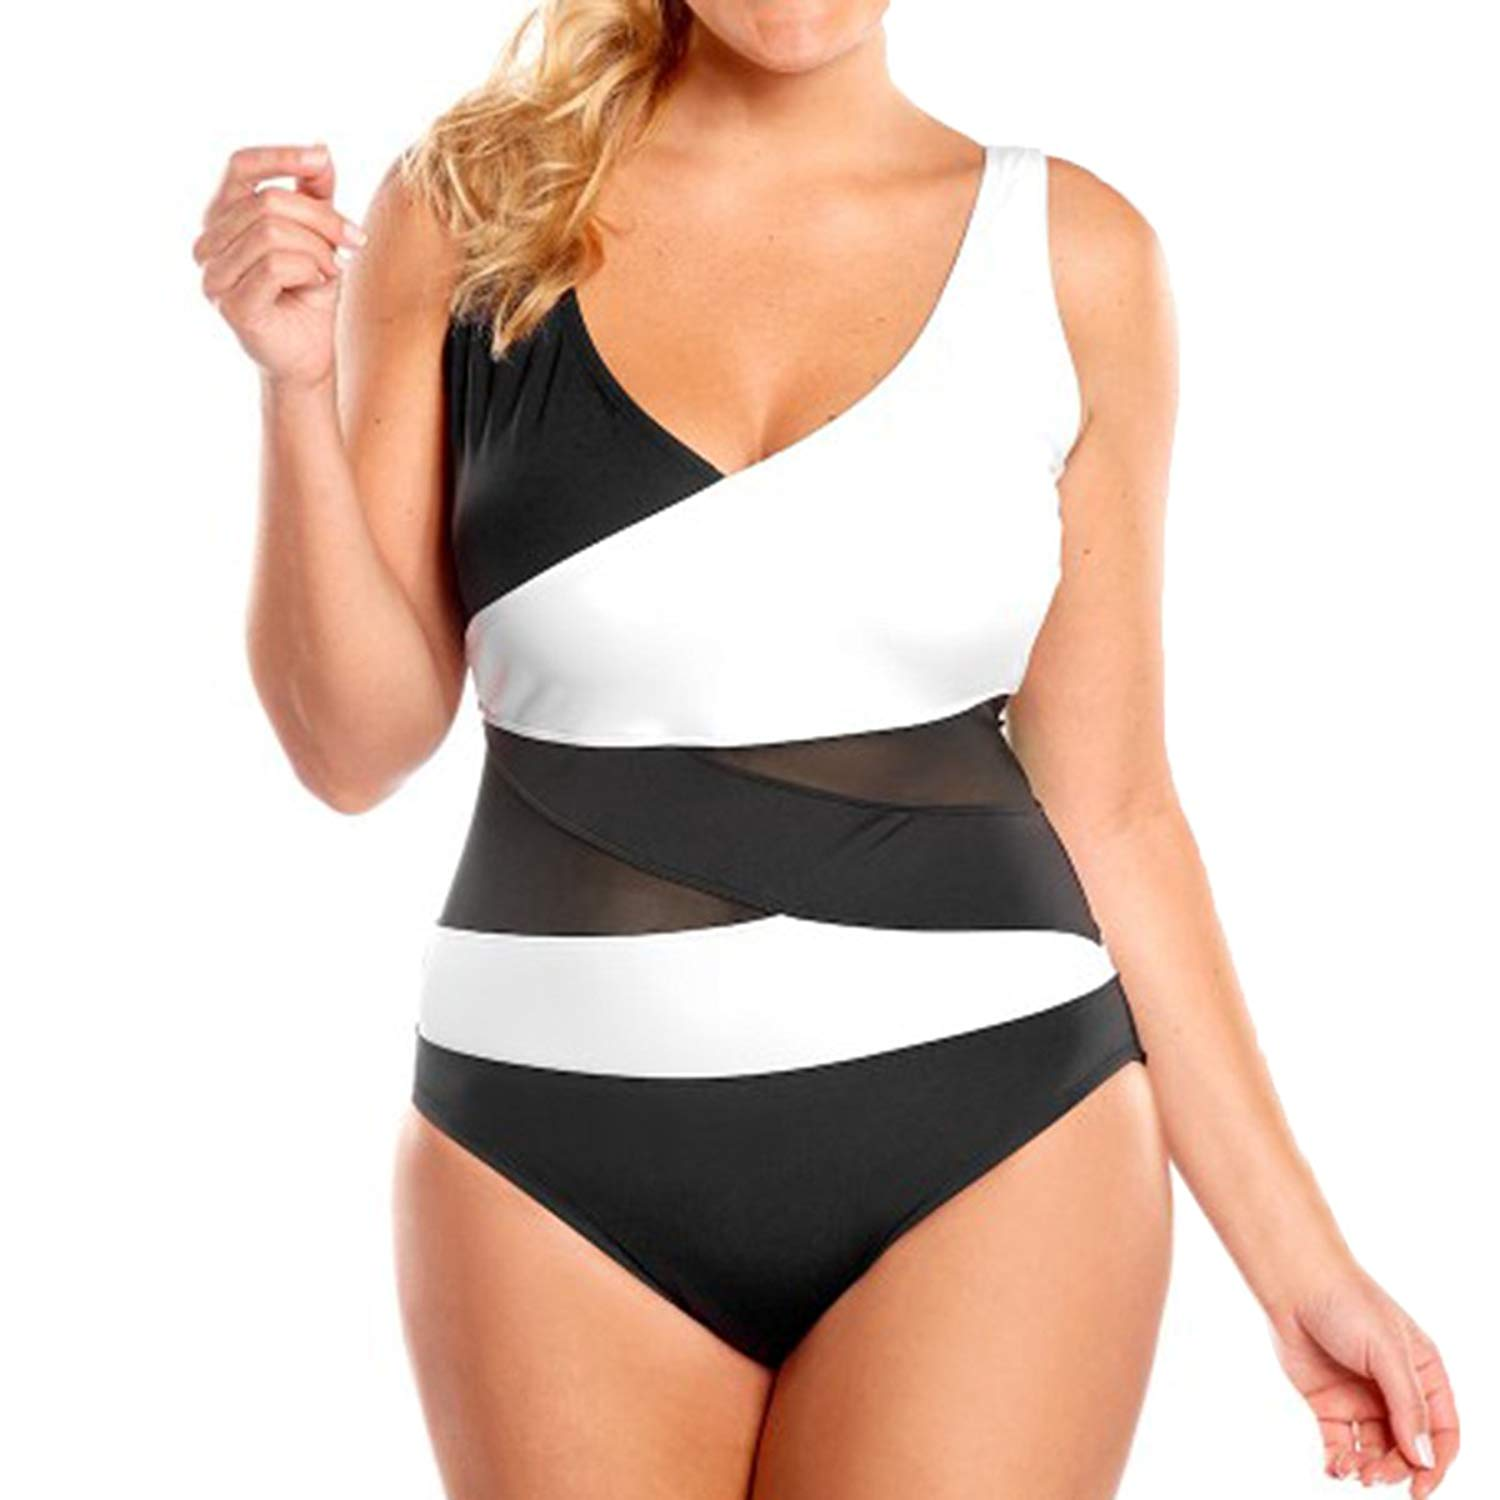 871ebdb5c9 Get Quotations · LAPAYA Women s One Piece Bathing Suit Mesh Splicing Tank  Backless Mailot Swimsuit